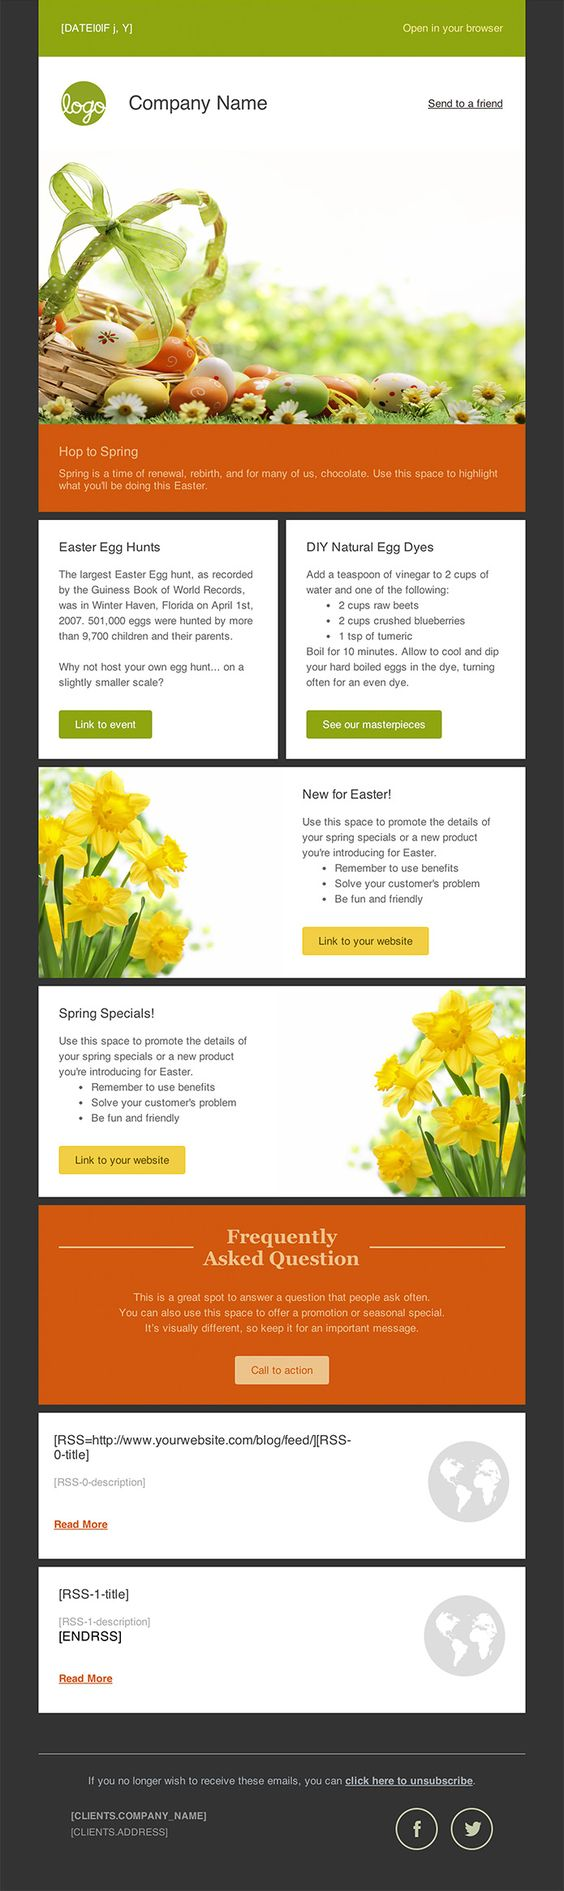 Newsletter Templates, Free Email Templates   CakeMail.com